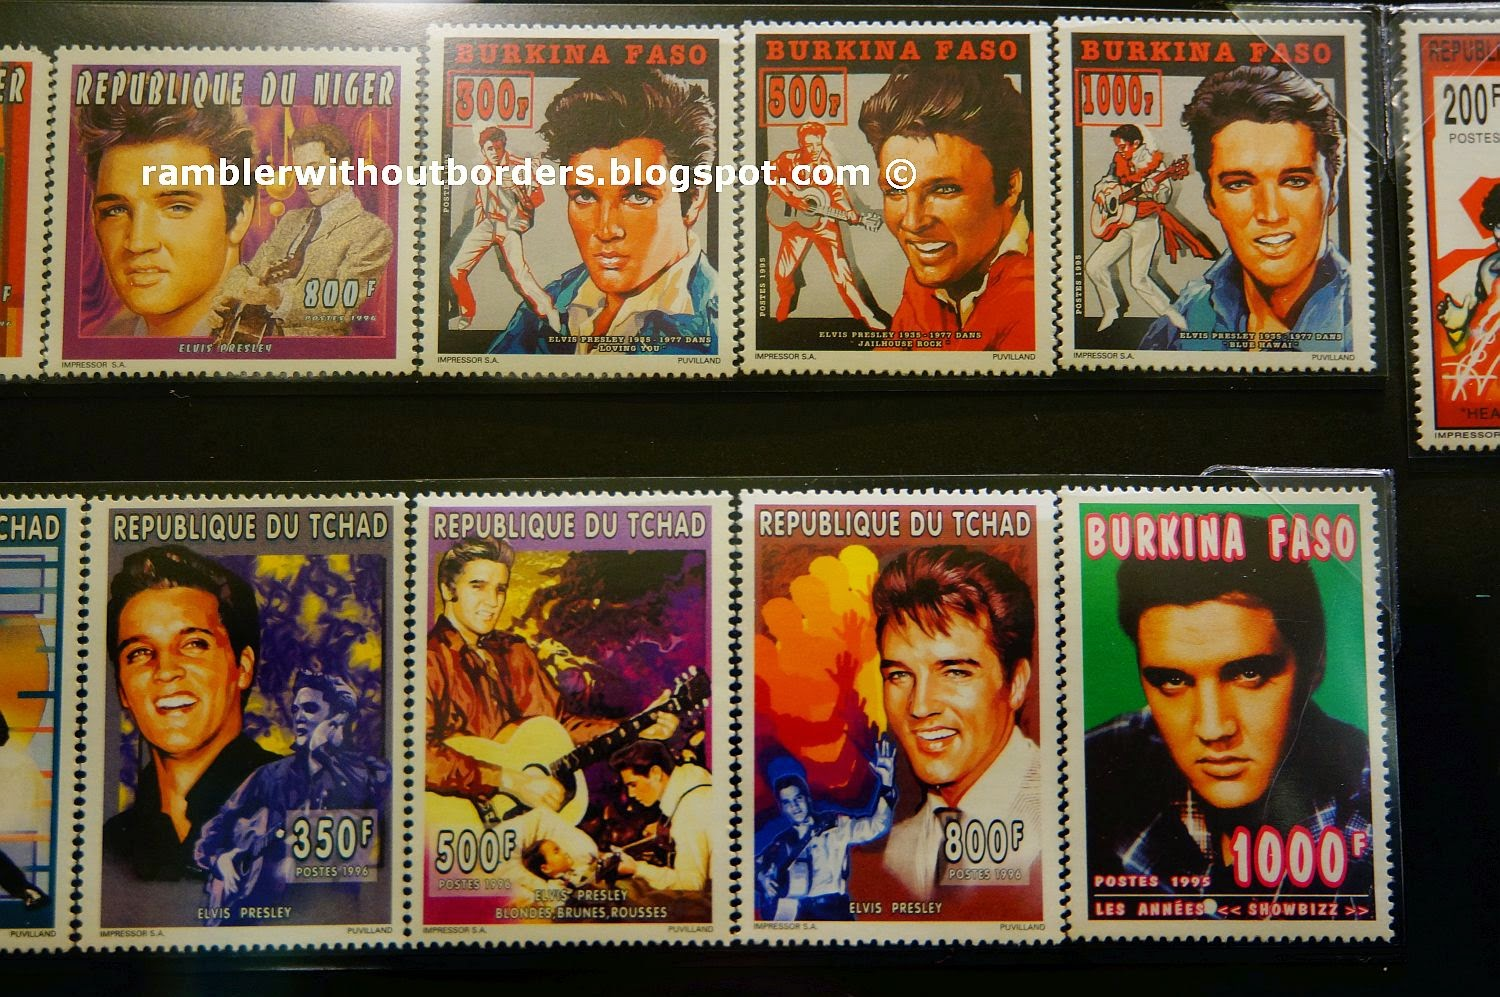 postage Stamps of Elvis Presley from the African countries of  Niger, Burkina Faso, and Republic of Chad